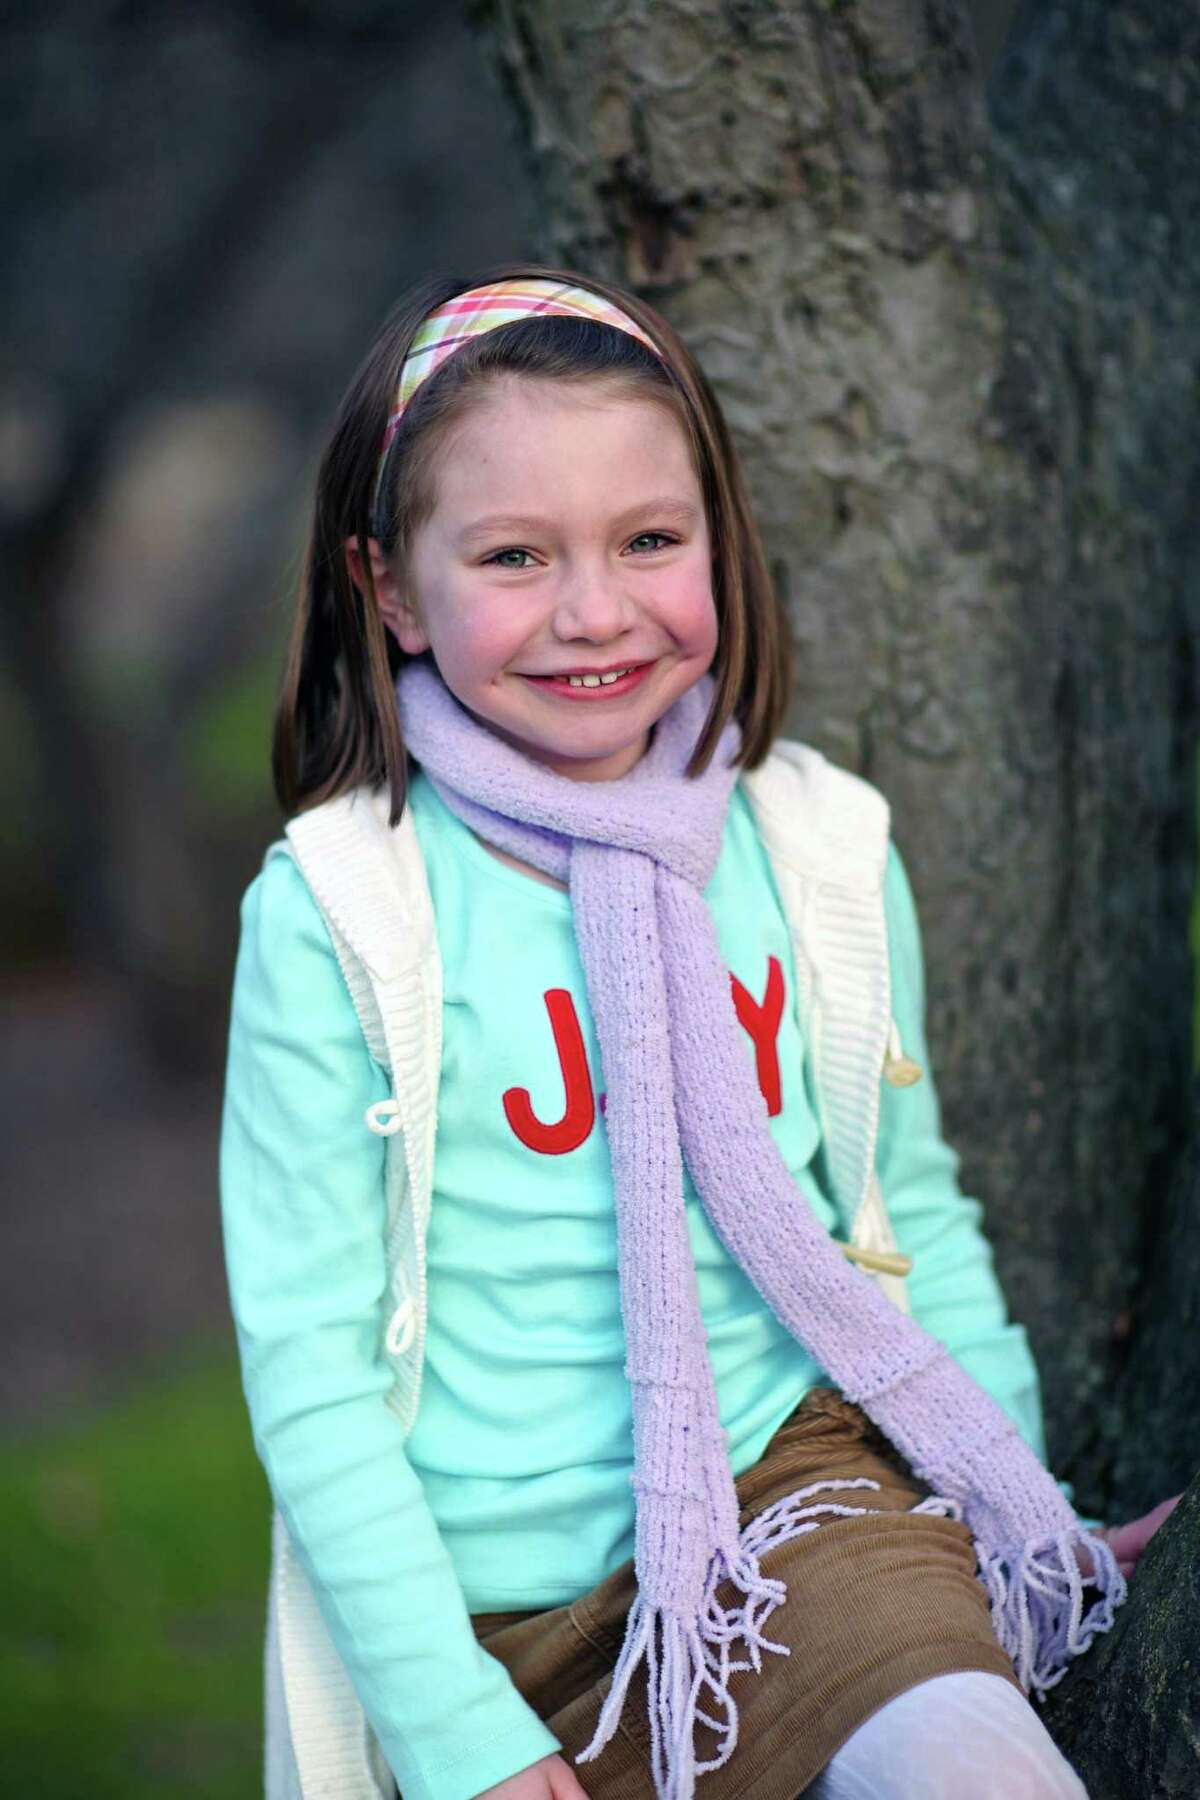 This Nov. 18, 2012 photo provided by John Engel shows Olivia Engel, 6, in Danbury, Conn. Olivia Engel. Olivia Engel, was killed Friday, Dec. 14, 2012, when a gunman opened fire at Sandy Hook Elementary School, in Newtown, Conn., killing 26 children and adults at the school.